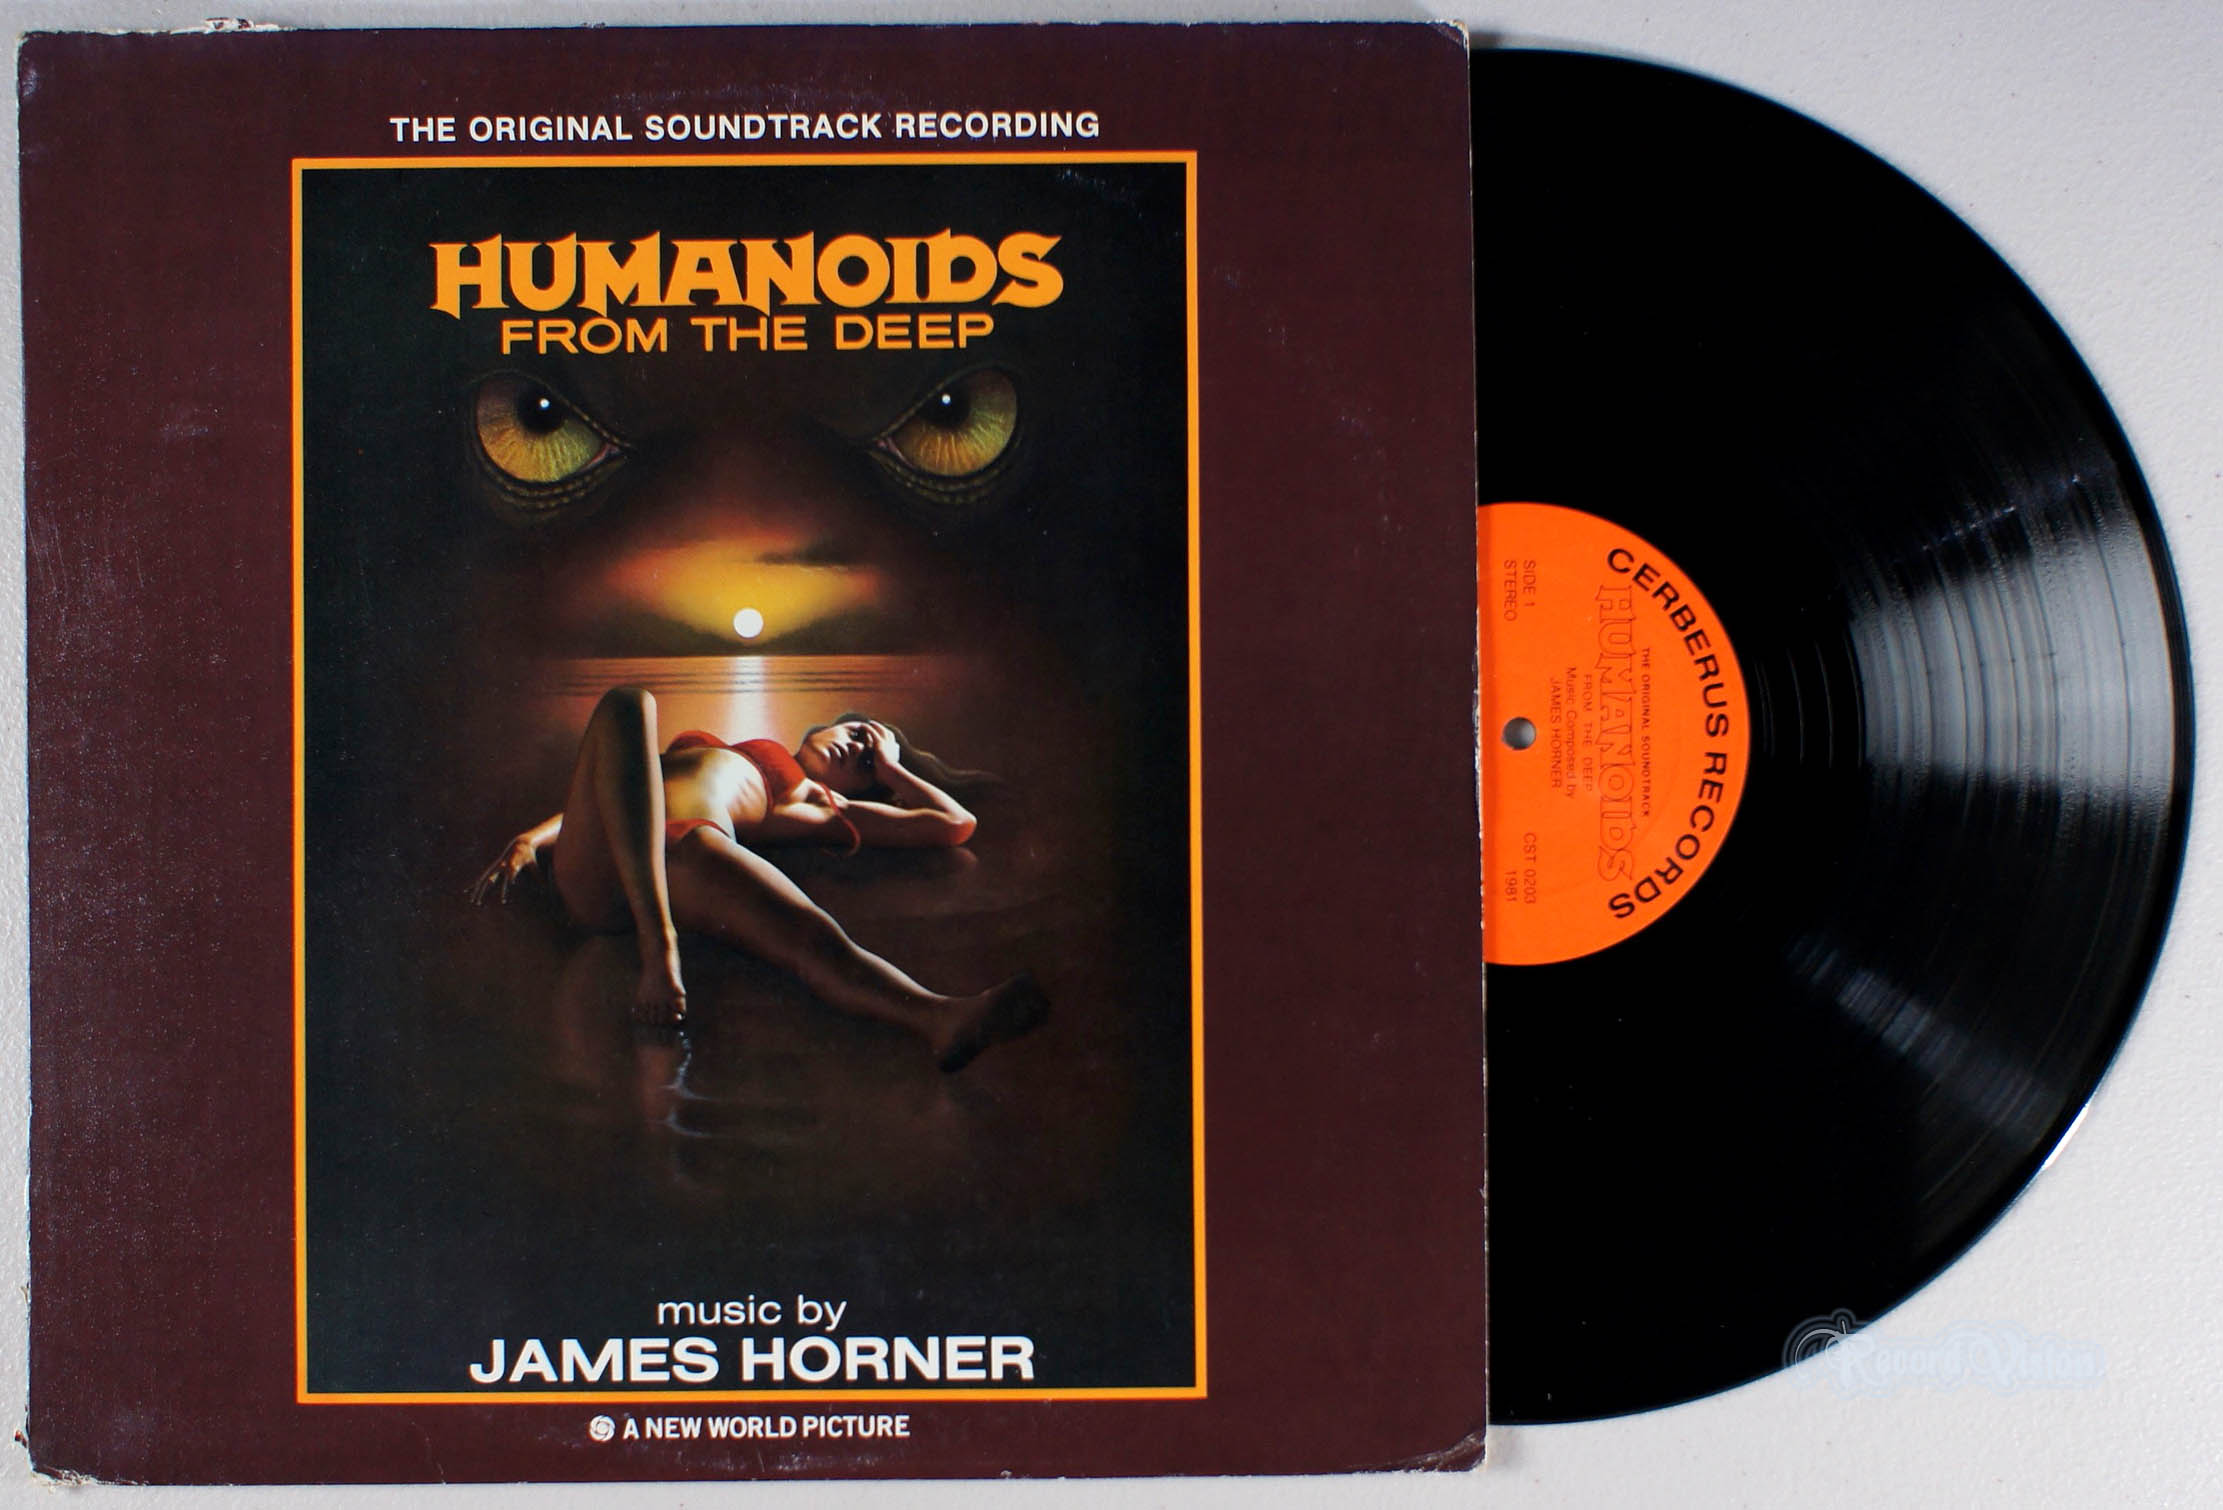 JAMES HORNER - Humanoids From the Deep - 33T